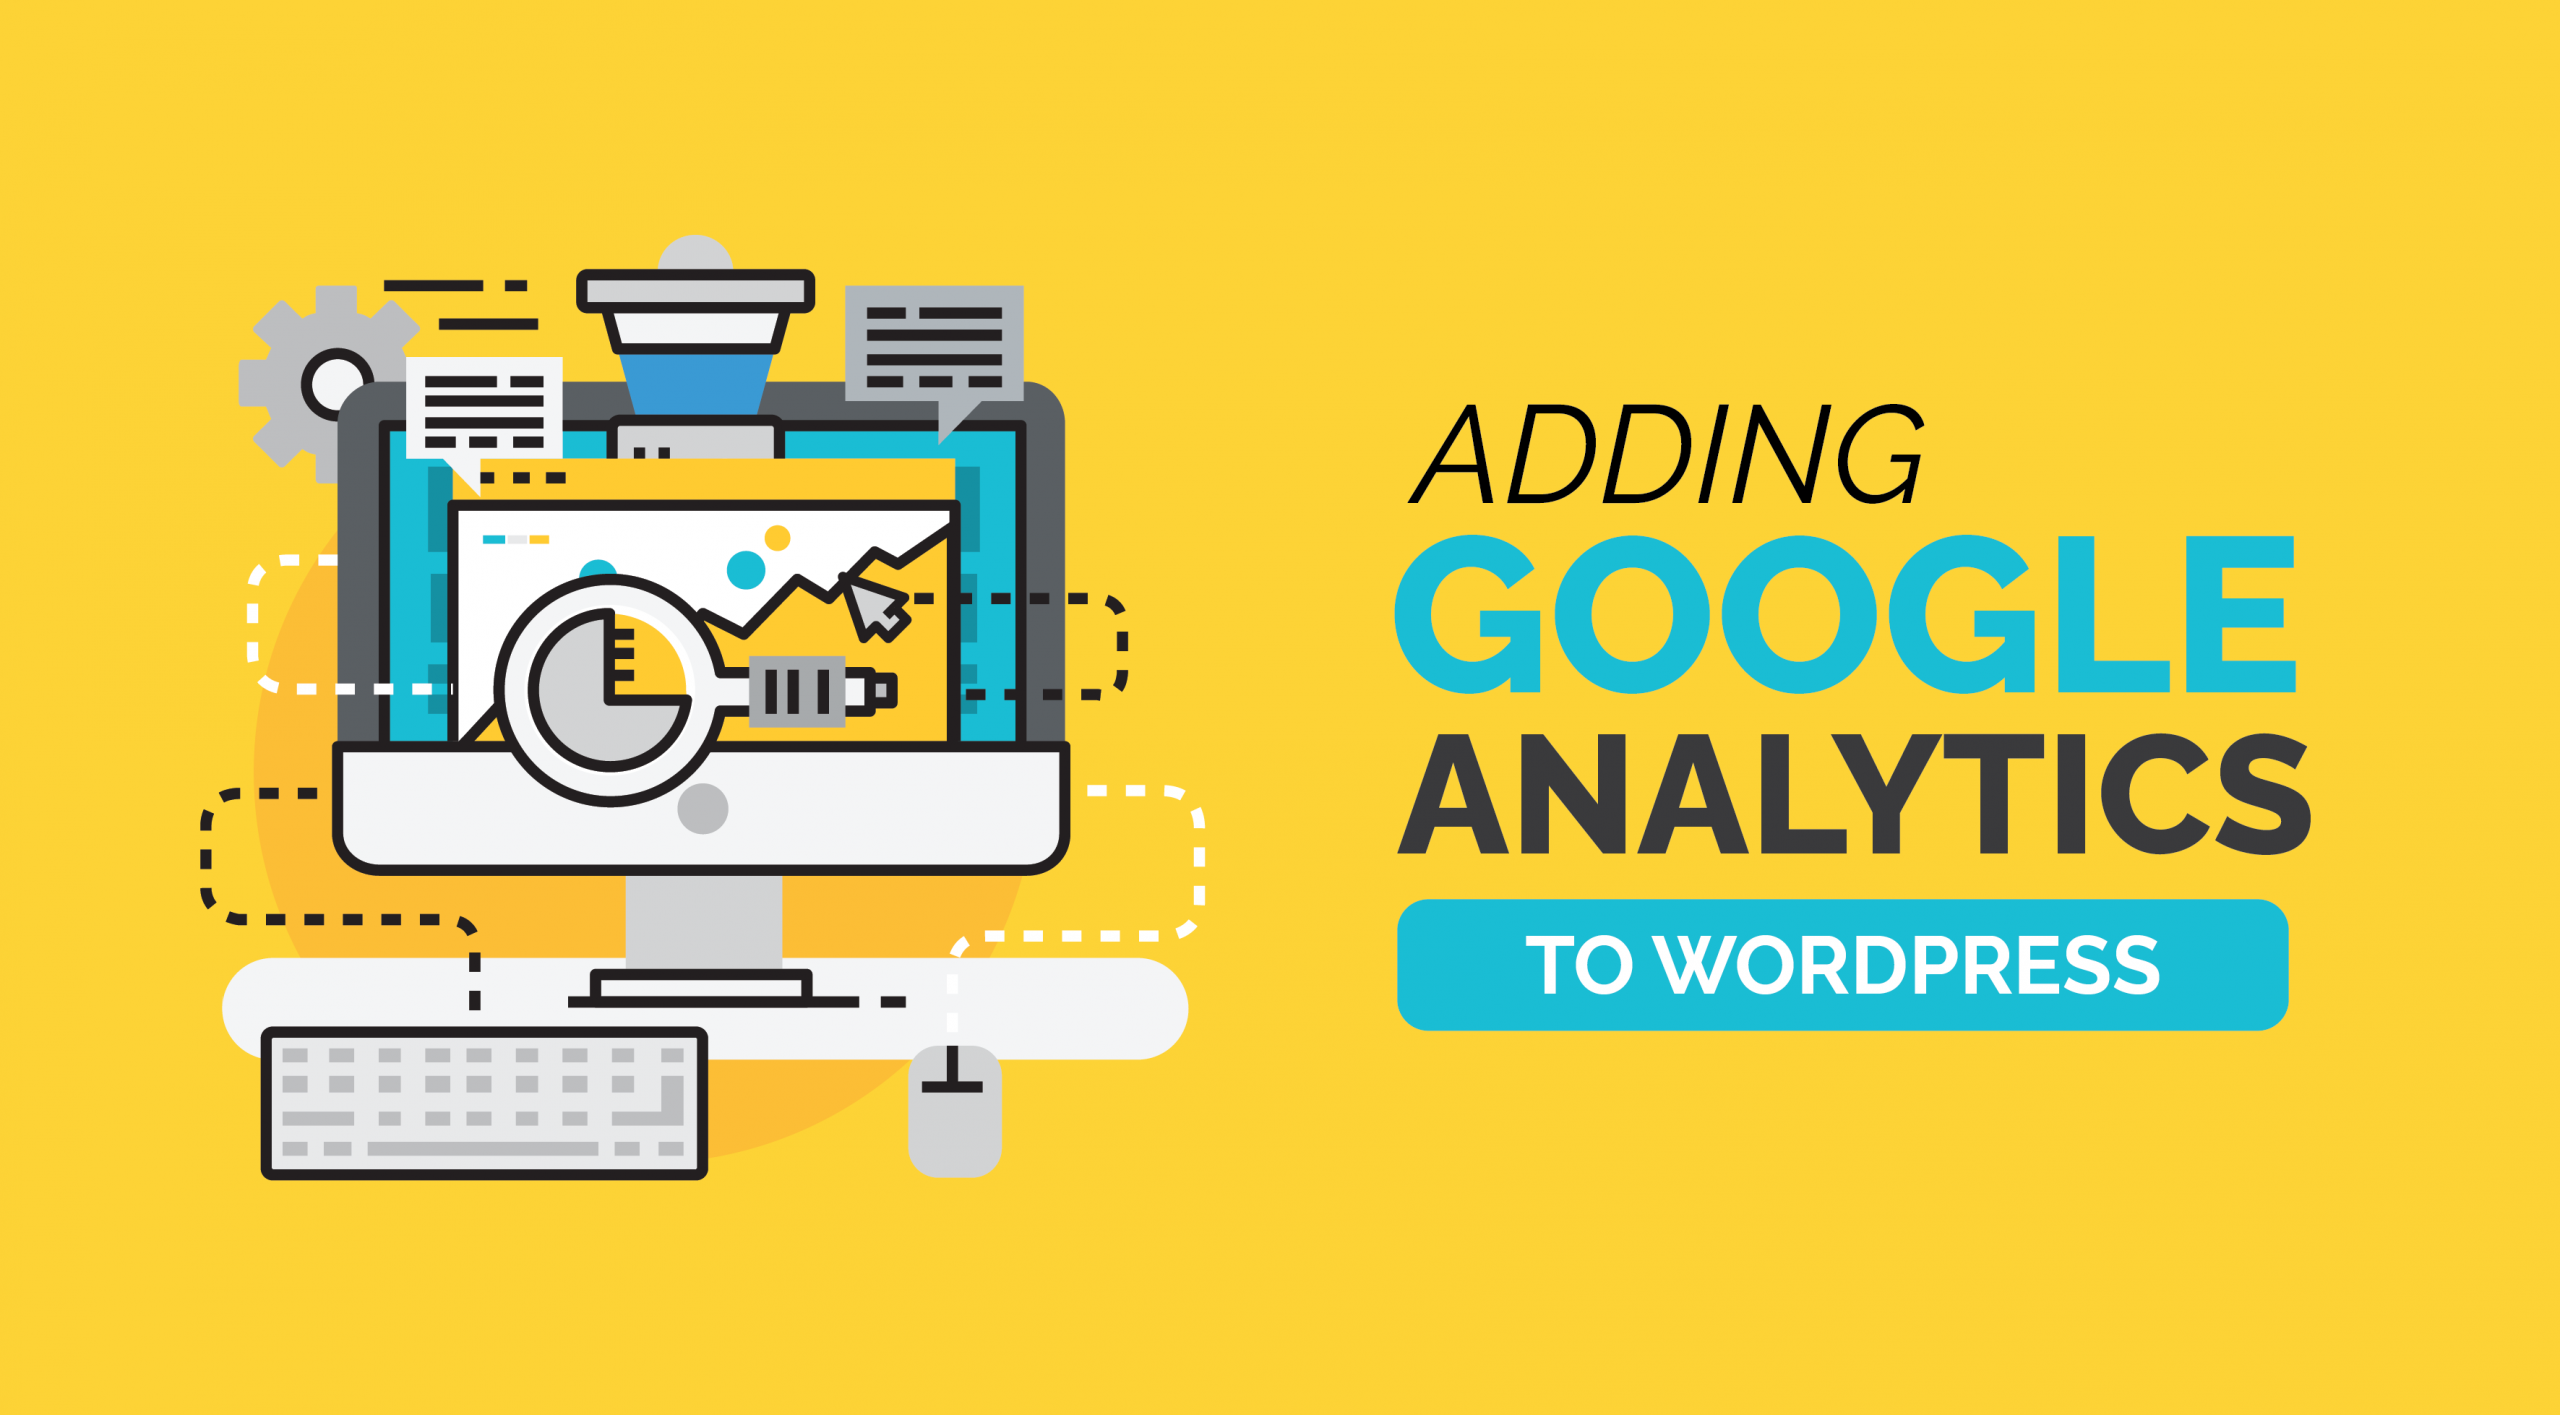 Adding Google Analytics to WordPress